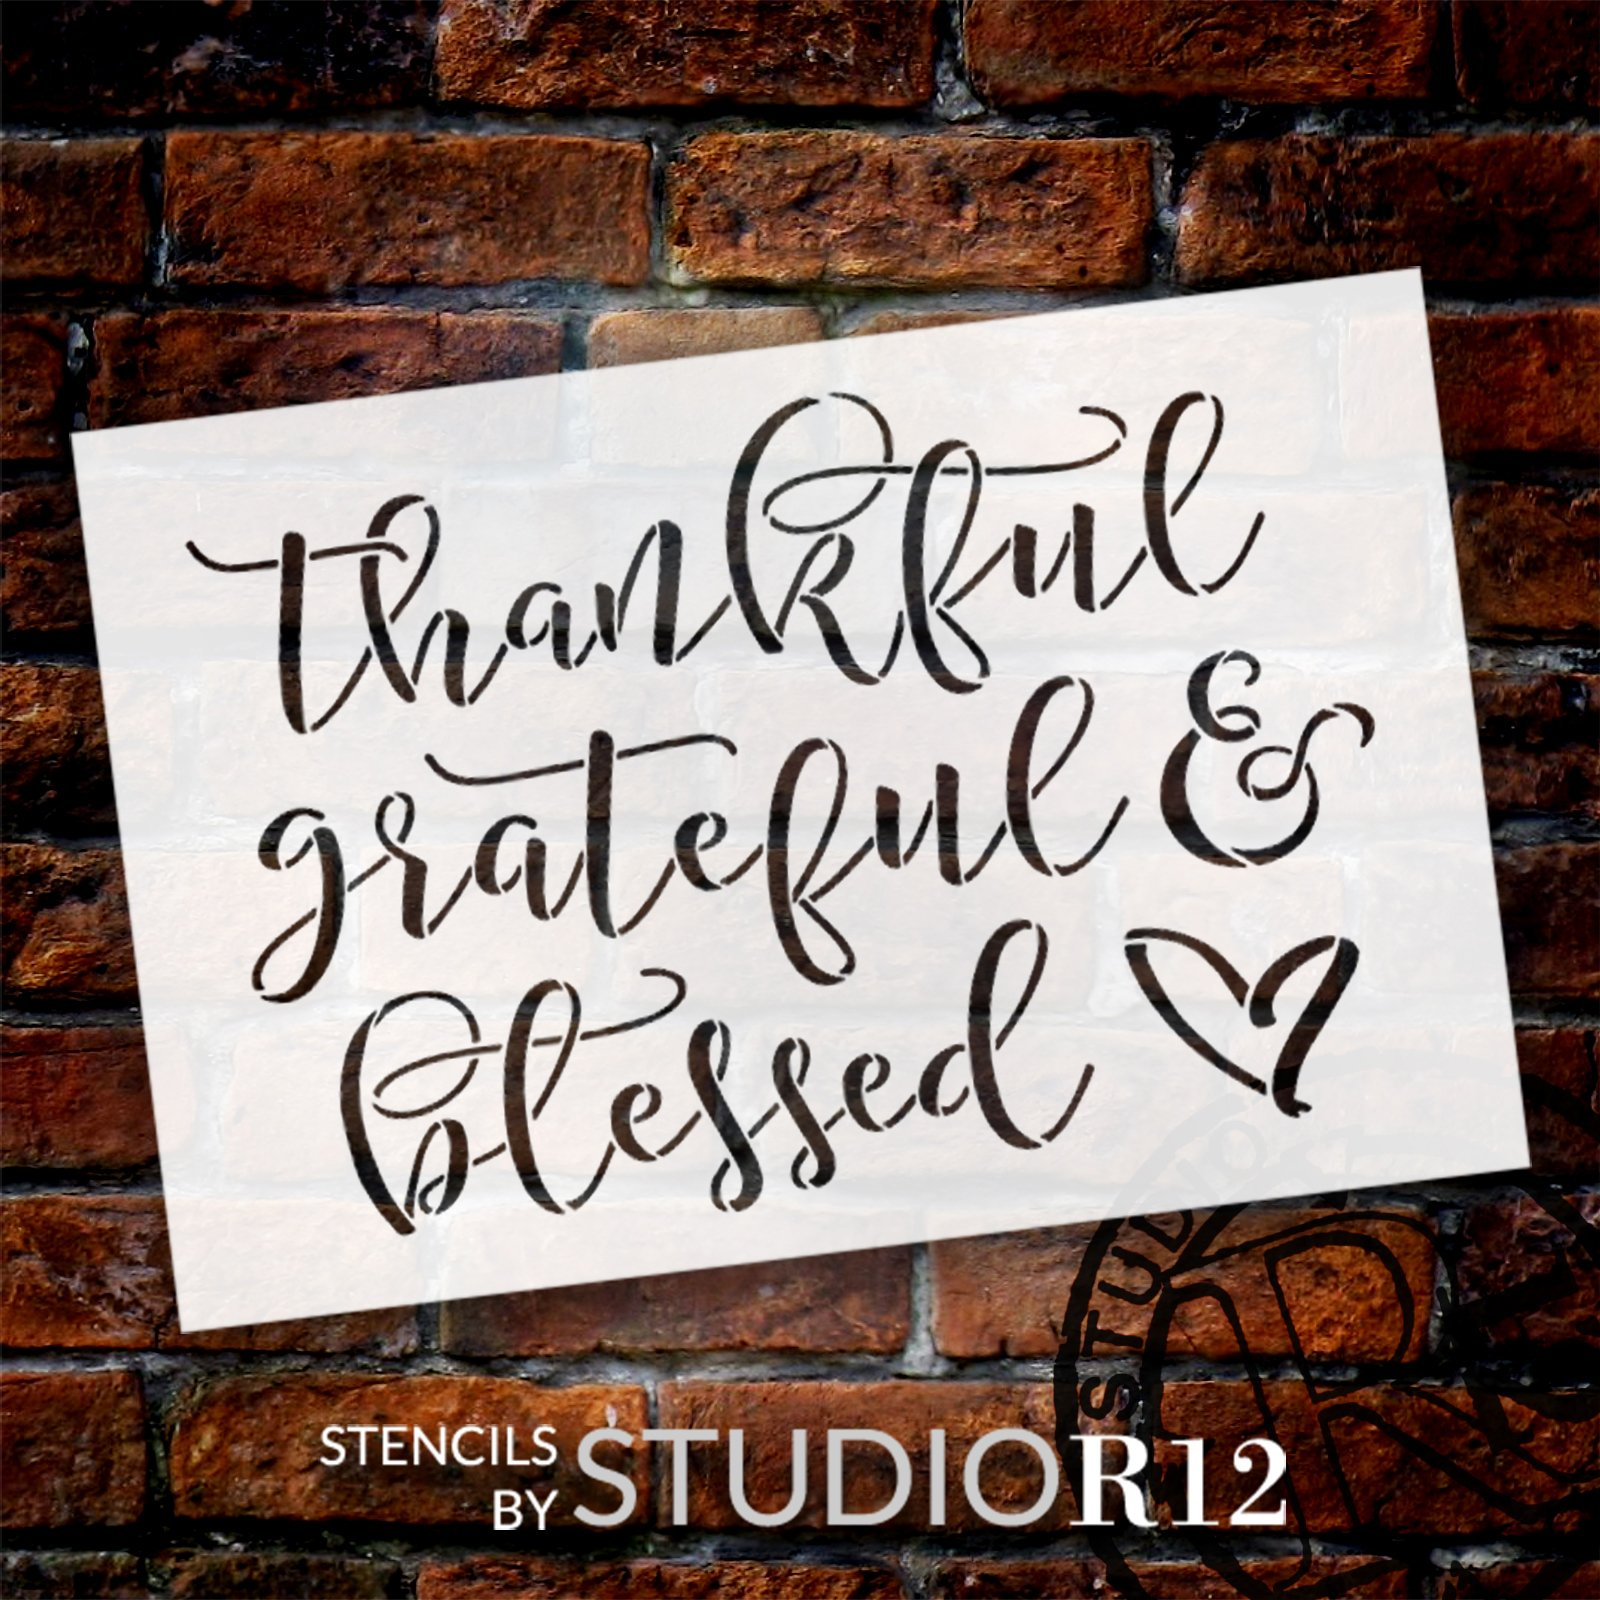 Thankful Grateful & Blessed Stencil by StudioR12   Craft DIY Fall Home Decor   Paint Cursive Script Wood Sign   Reusable Mylar Template   Select Size